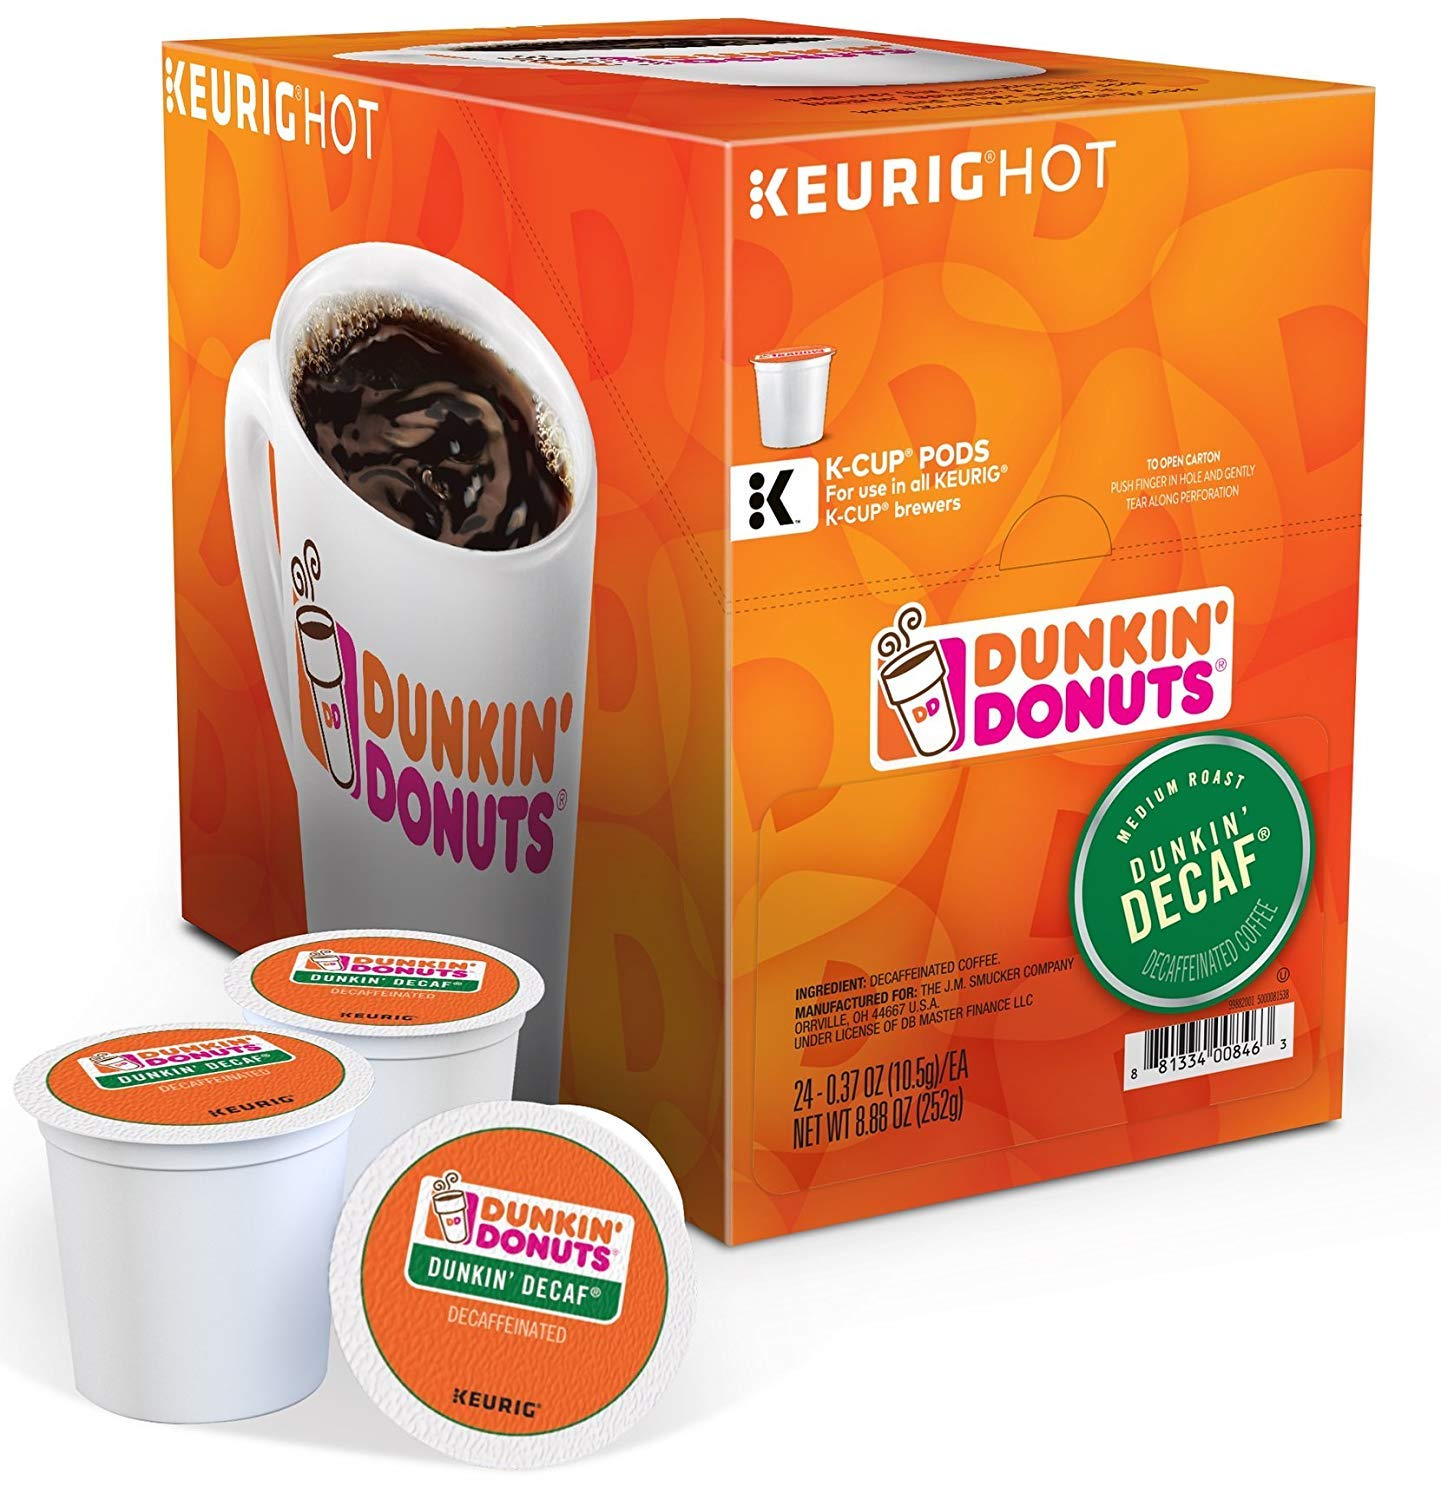 Dunkin Donuts Dunkin Decaf K-Cups (72 Count) with Bonus K-Cups